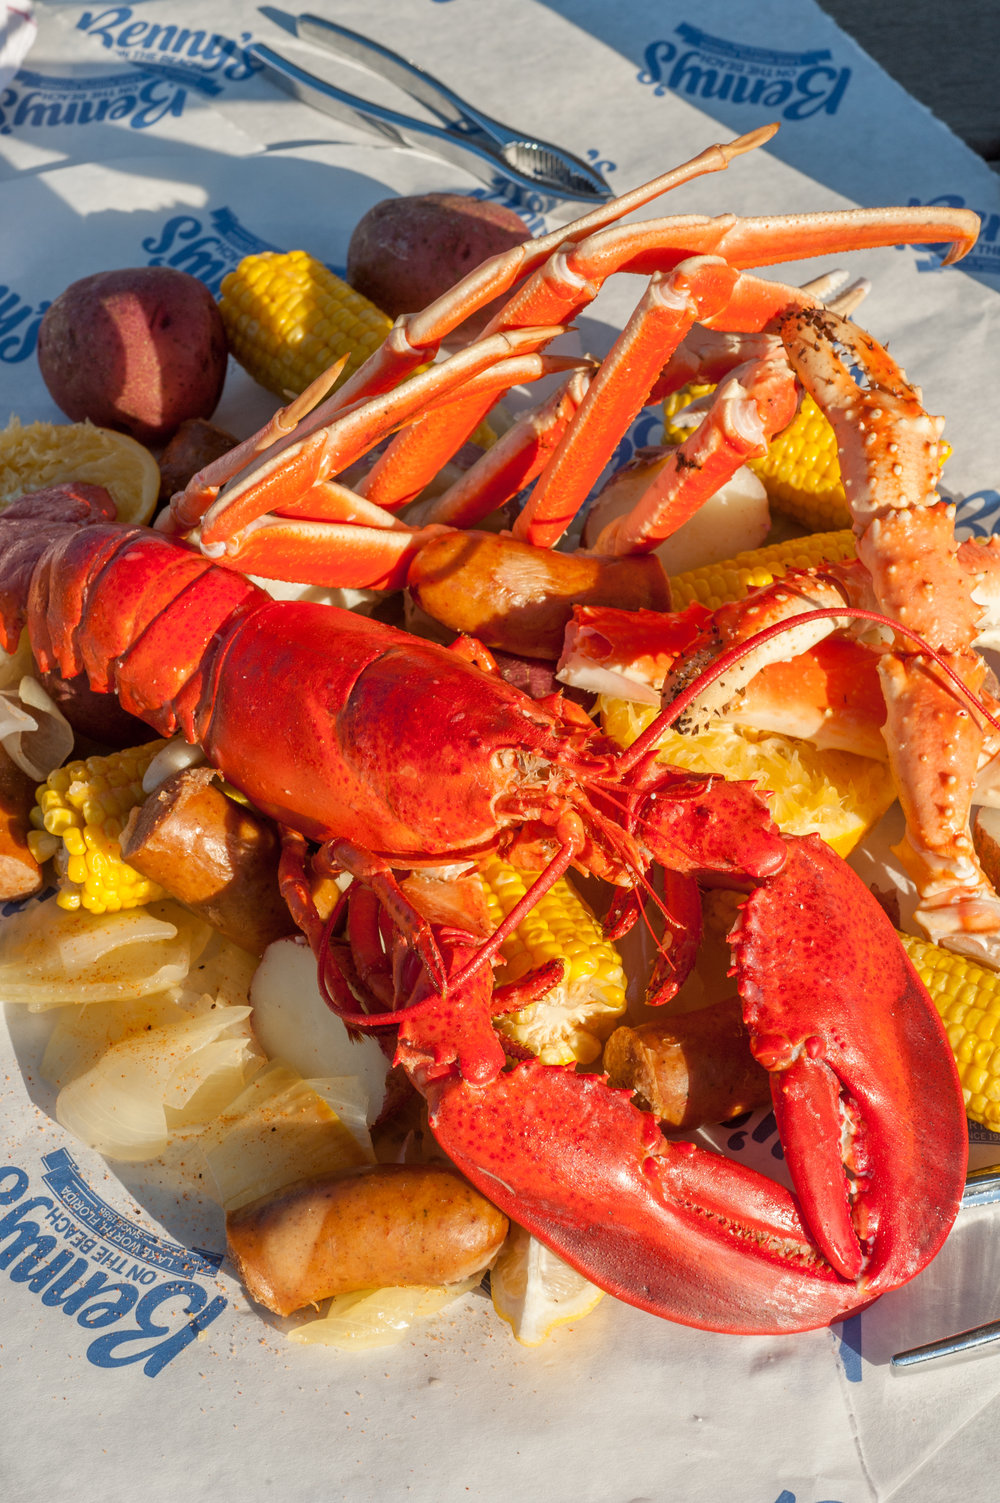 SEAFOOD BAKE - MONDAY THROUGH FRIDAYFROM 5:00PM UNTIL CLOSERESERVATIONS RECOMMENDED